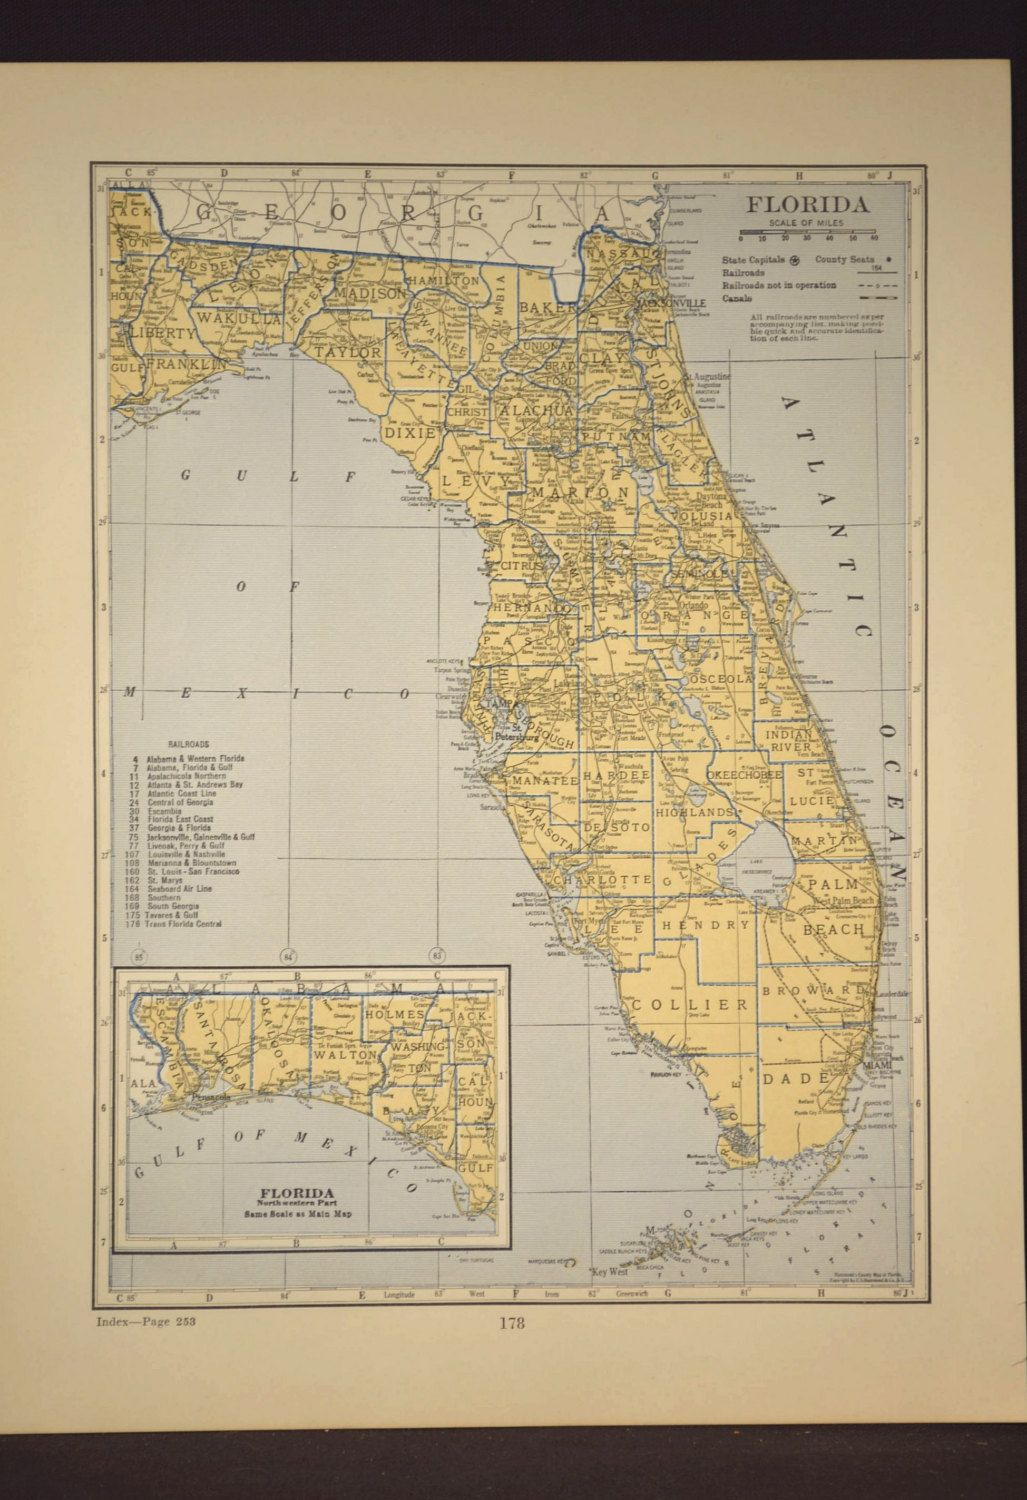 Florida Map Of Florida Wall Art Decor Antique Original Railroad - Florida Map Wall Decor